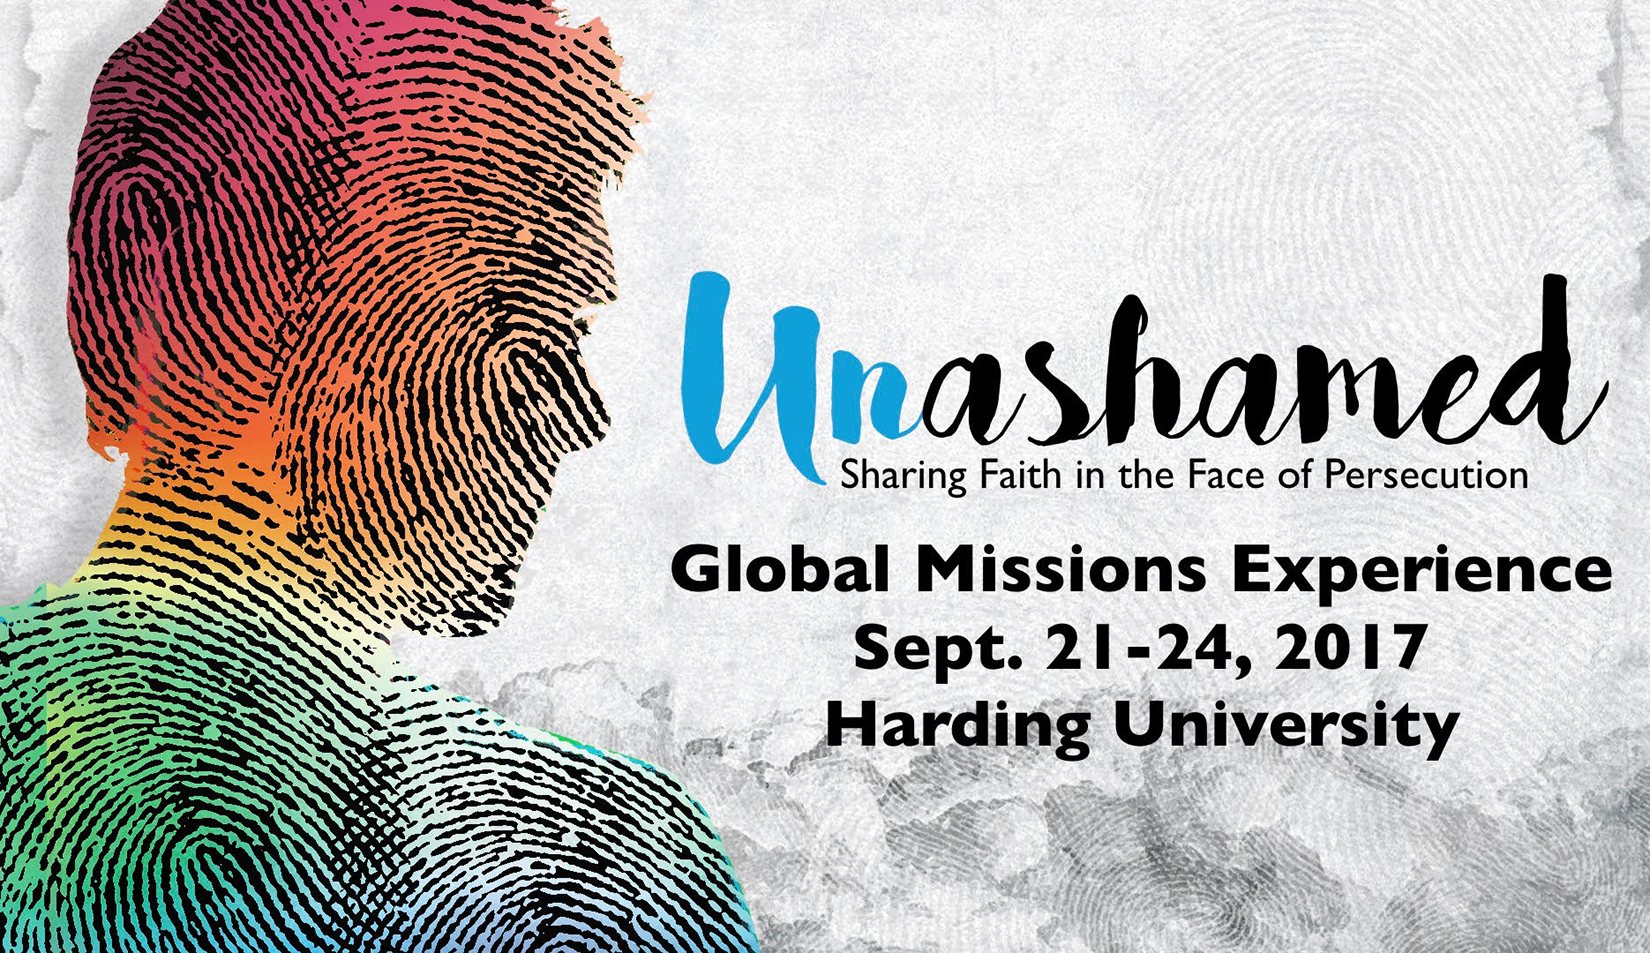 Global Missions Experience theme Unashamed